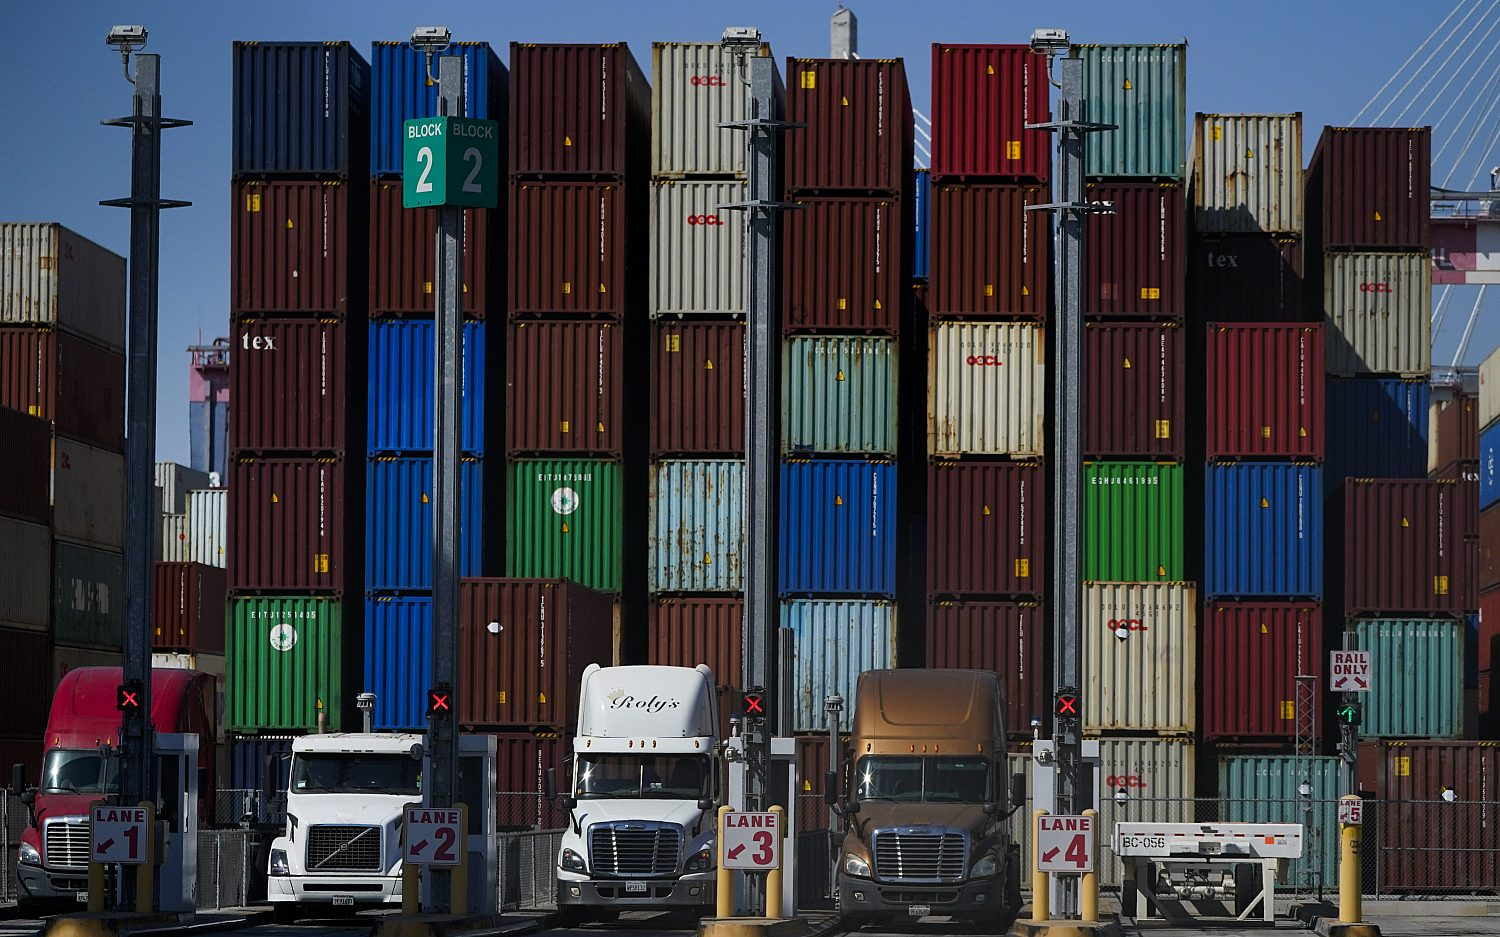 California ports open 24/7 to relieve supply chain